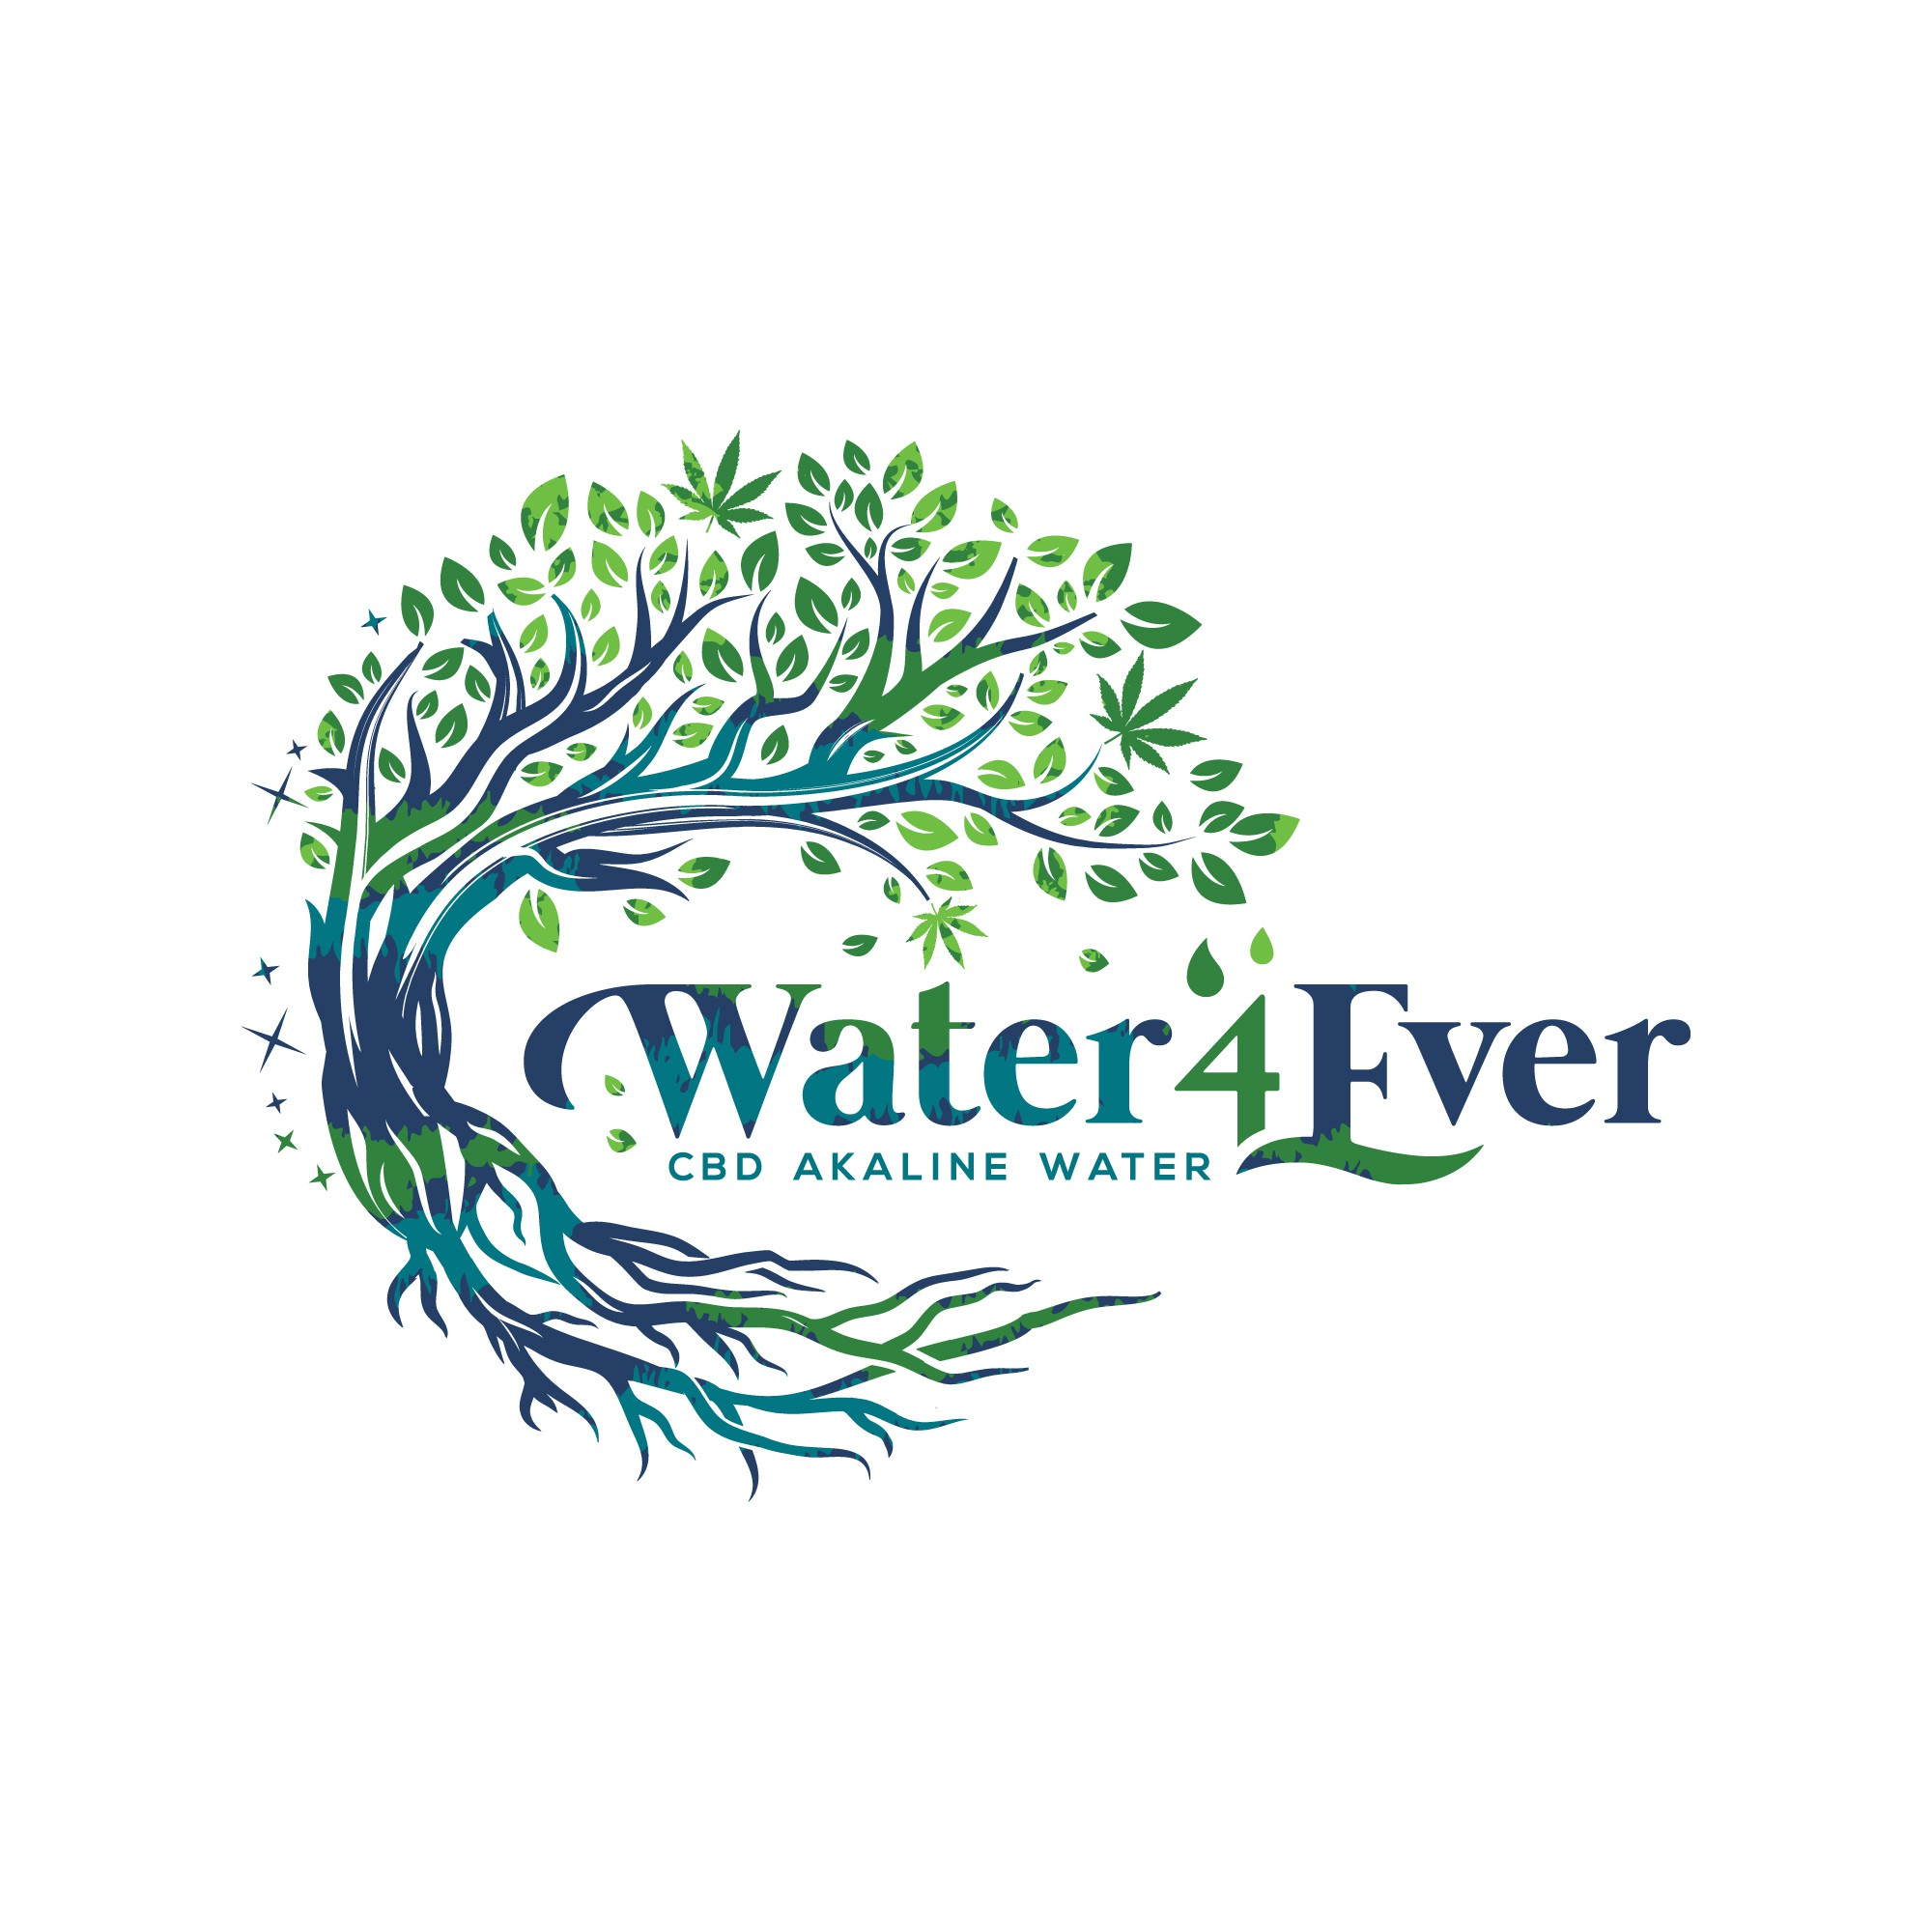 Water 4-Ever presents CBD Infused Products